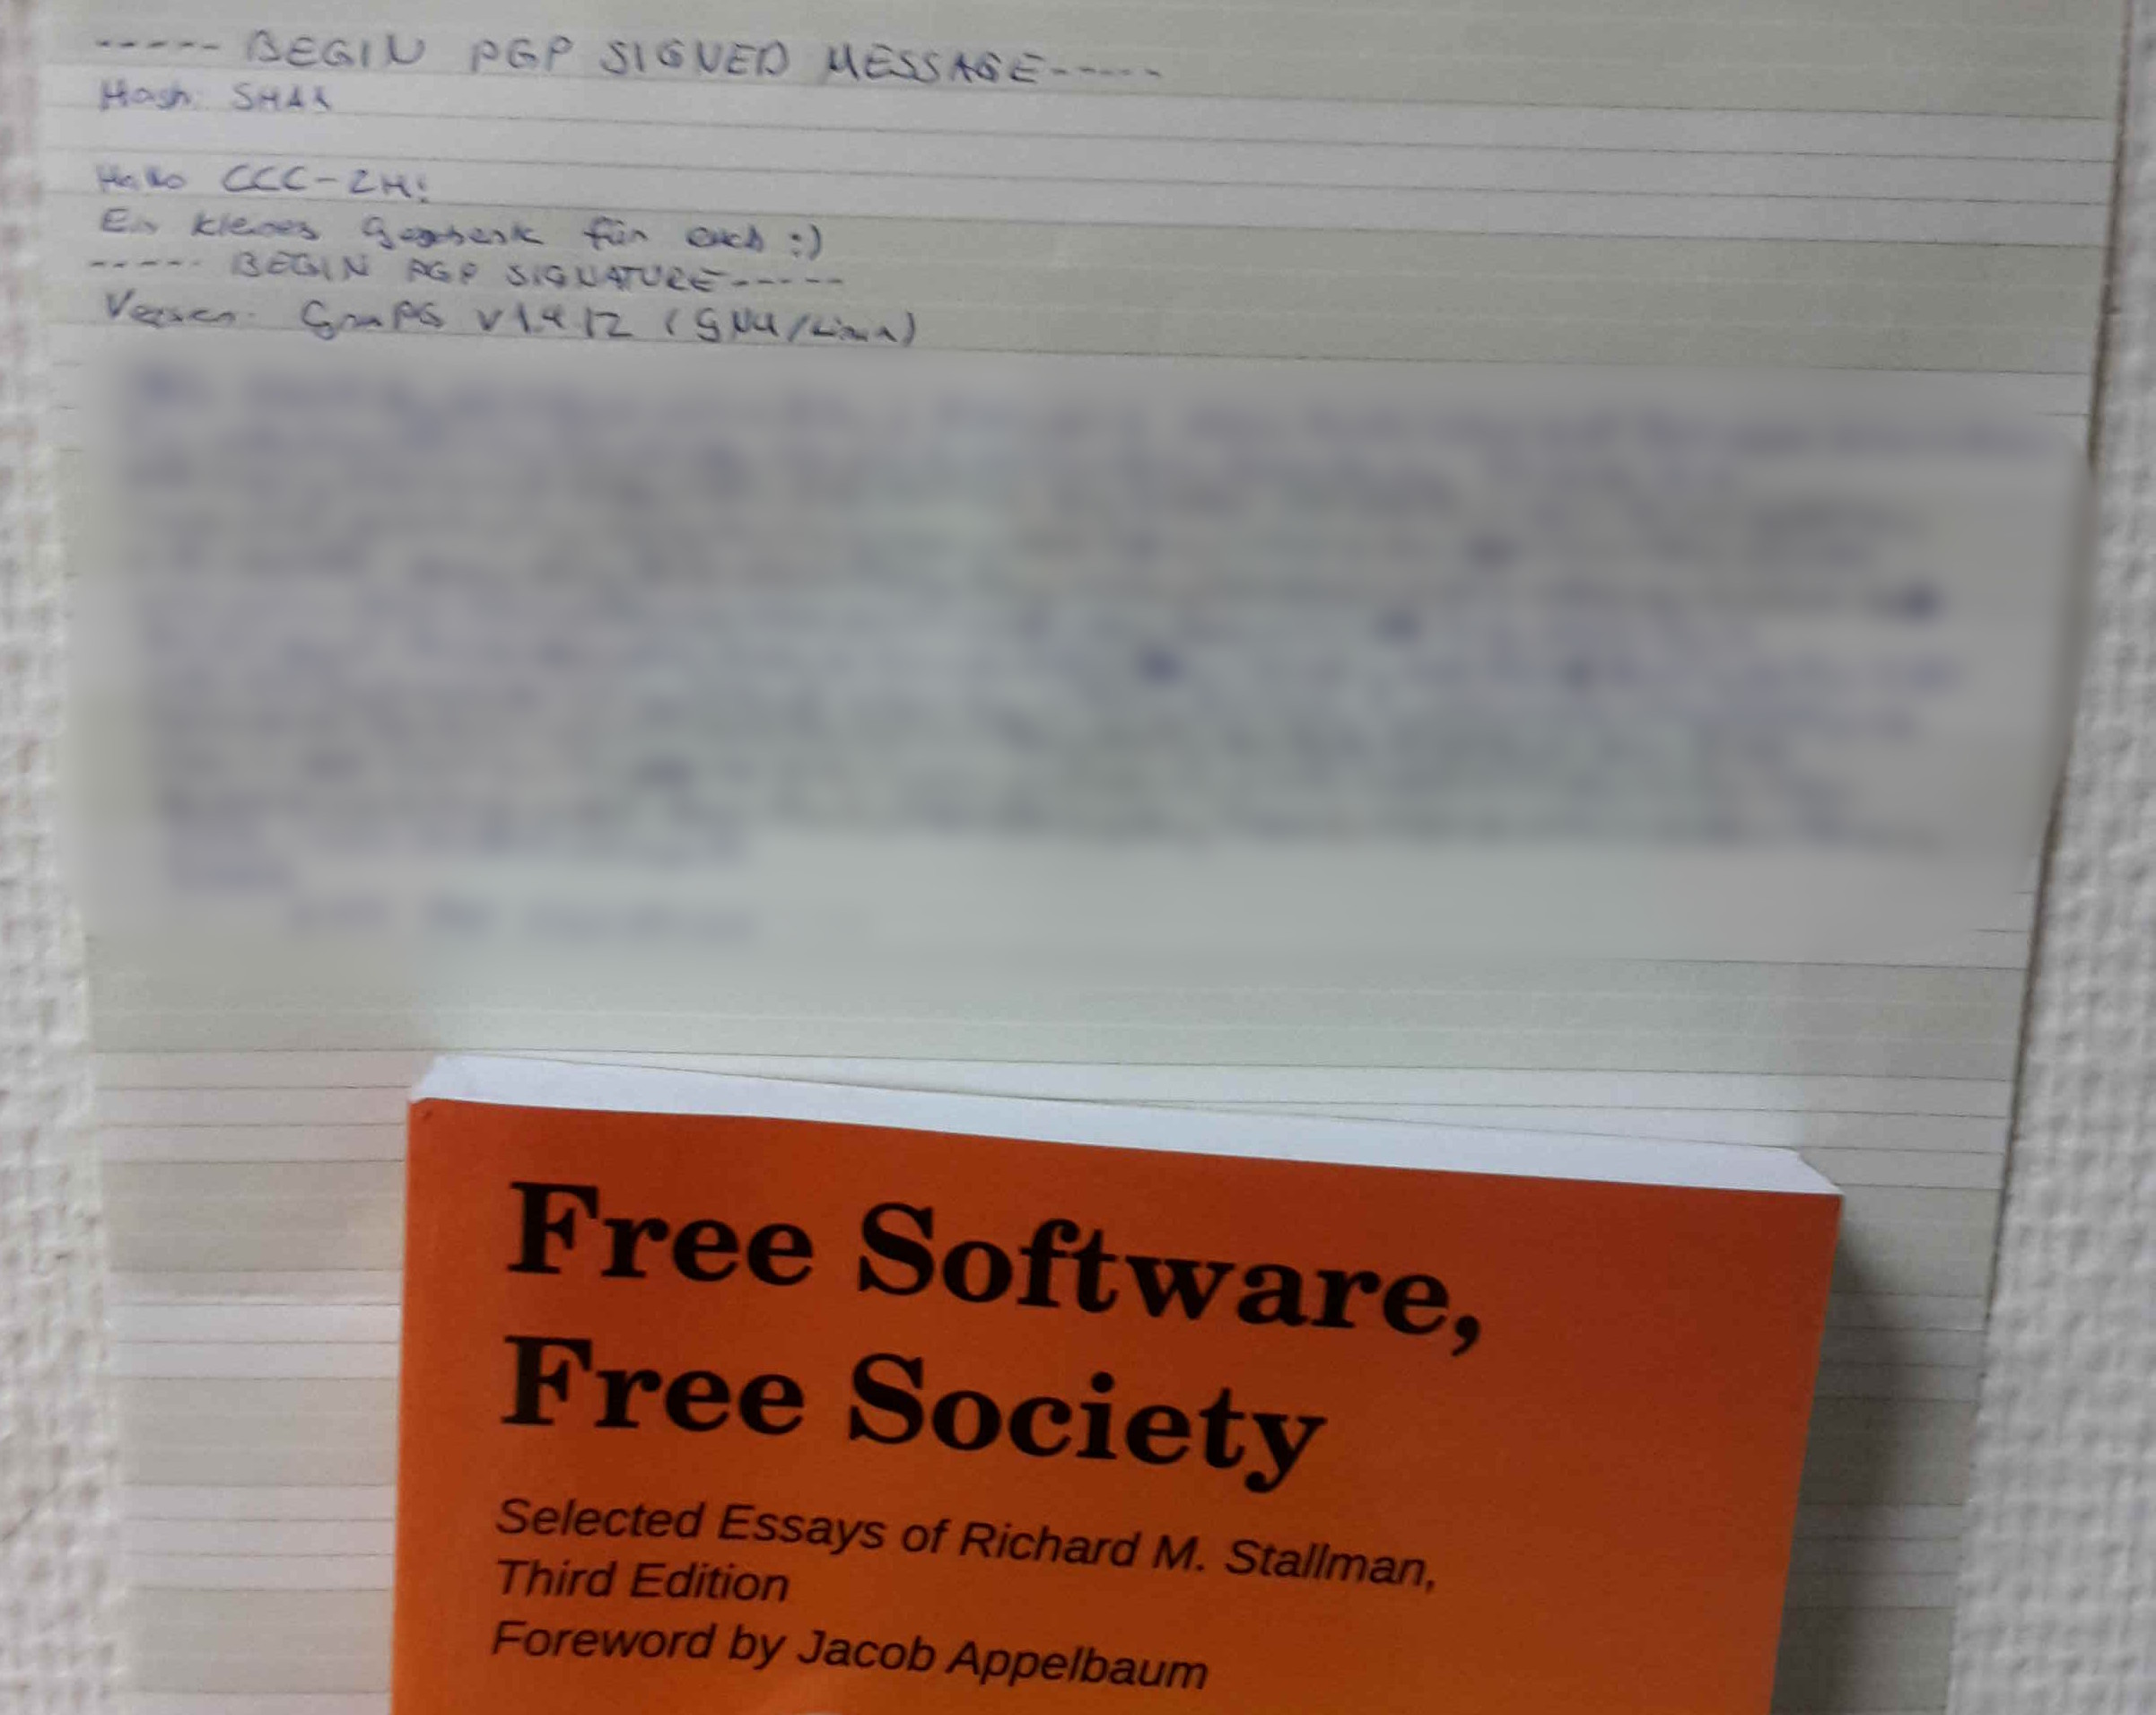 Cover image for article Freie Software, Freie Geschenke